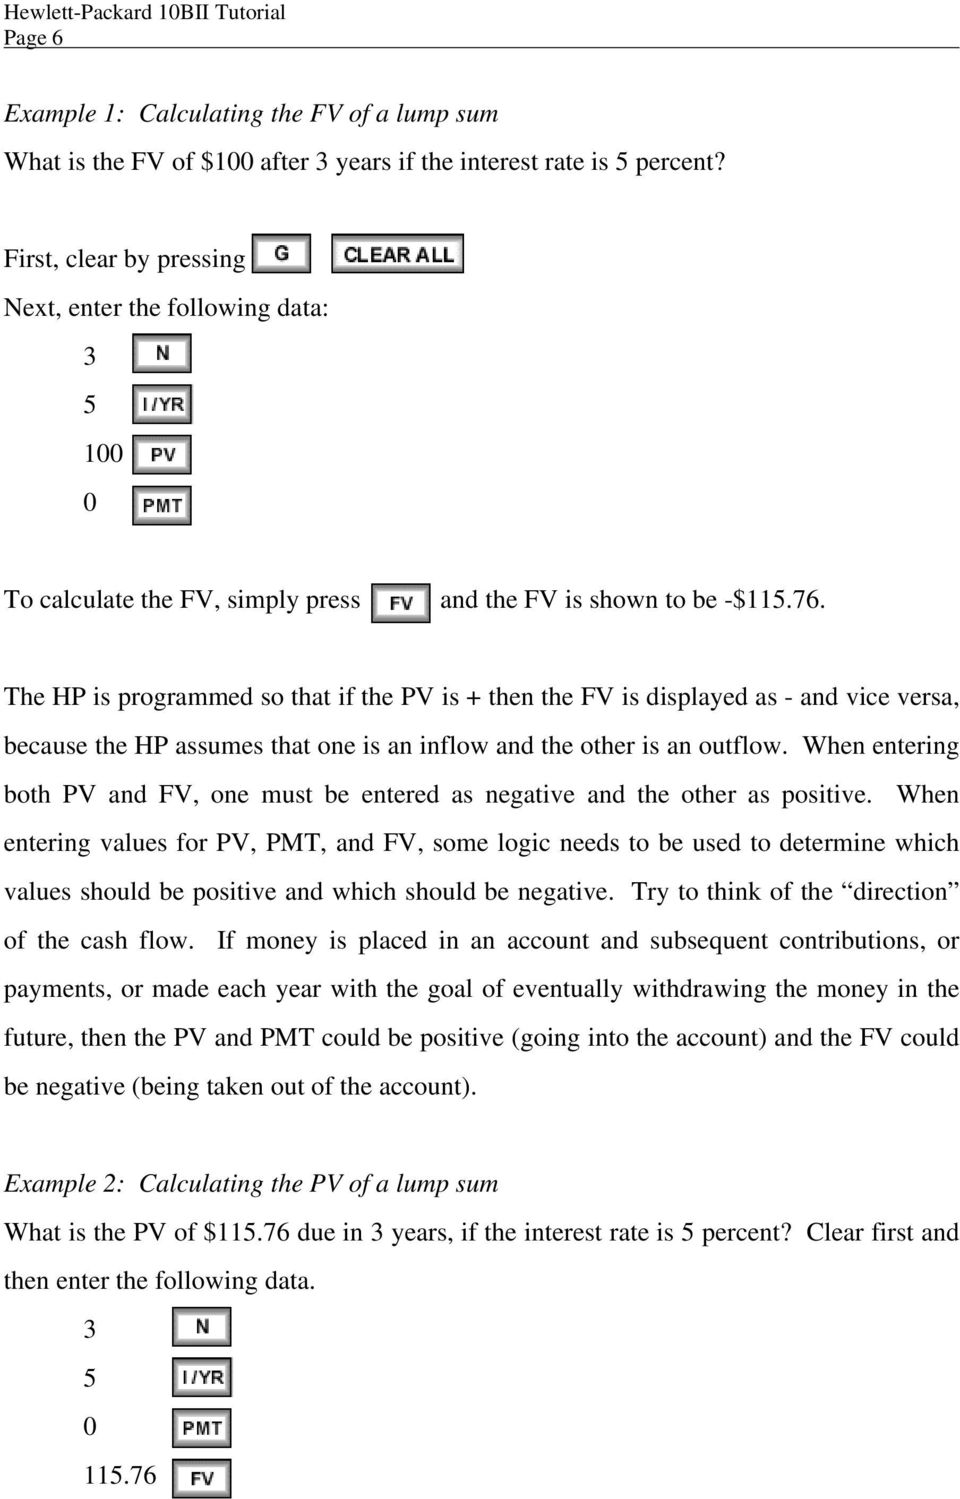 The HP is programmed so that if the PV is + then the FV is displayed as - and vice versa, because the HP assumes that one is an inflow and the other is an outflow.